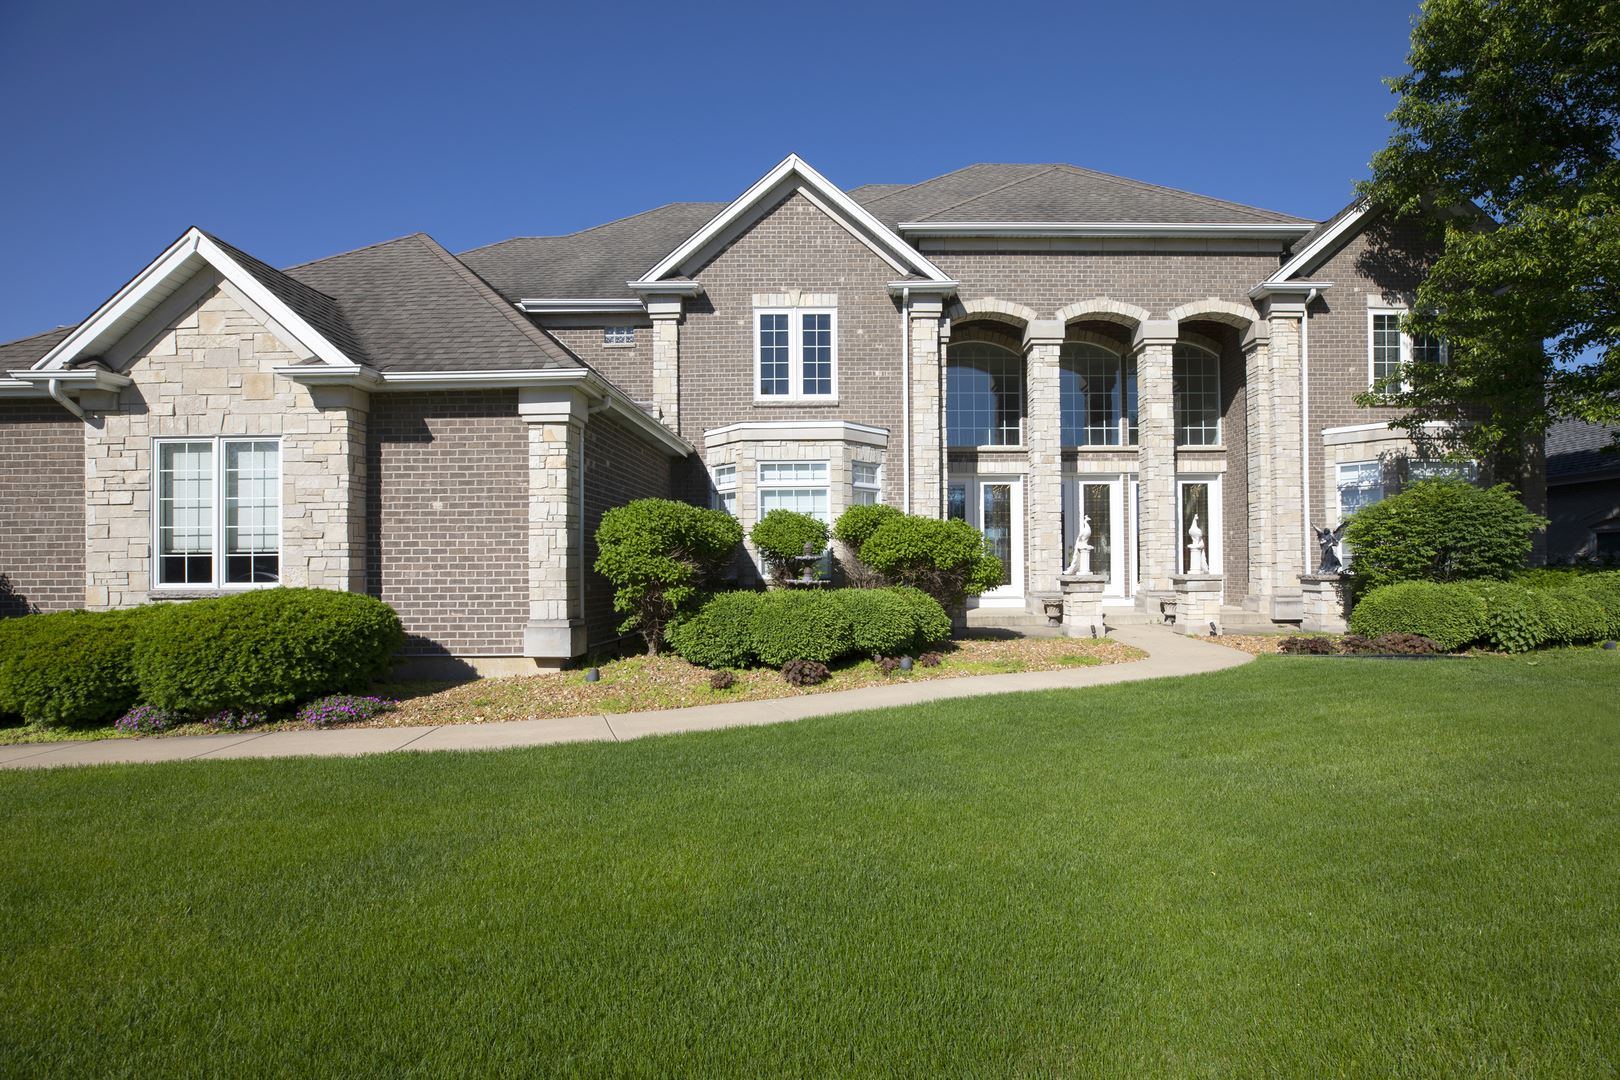 13158 WOOD DUCK Drive, Plainfield, IL 60585 - MLS#: 10724421